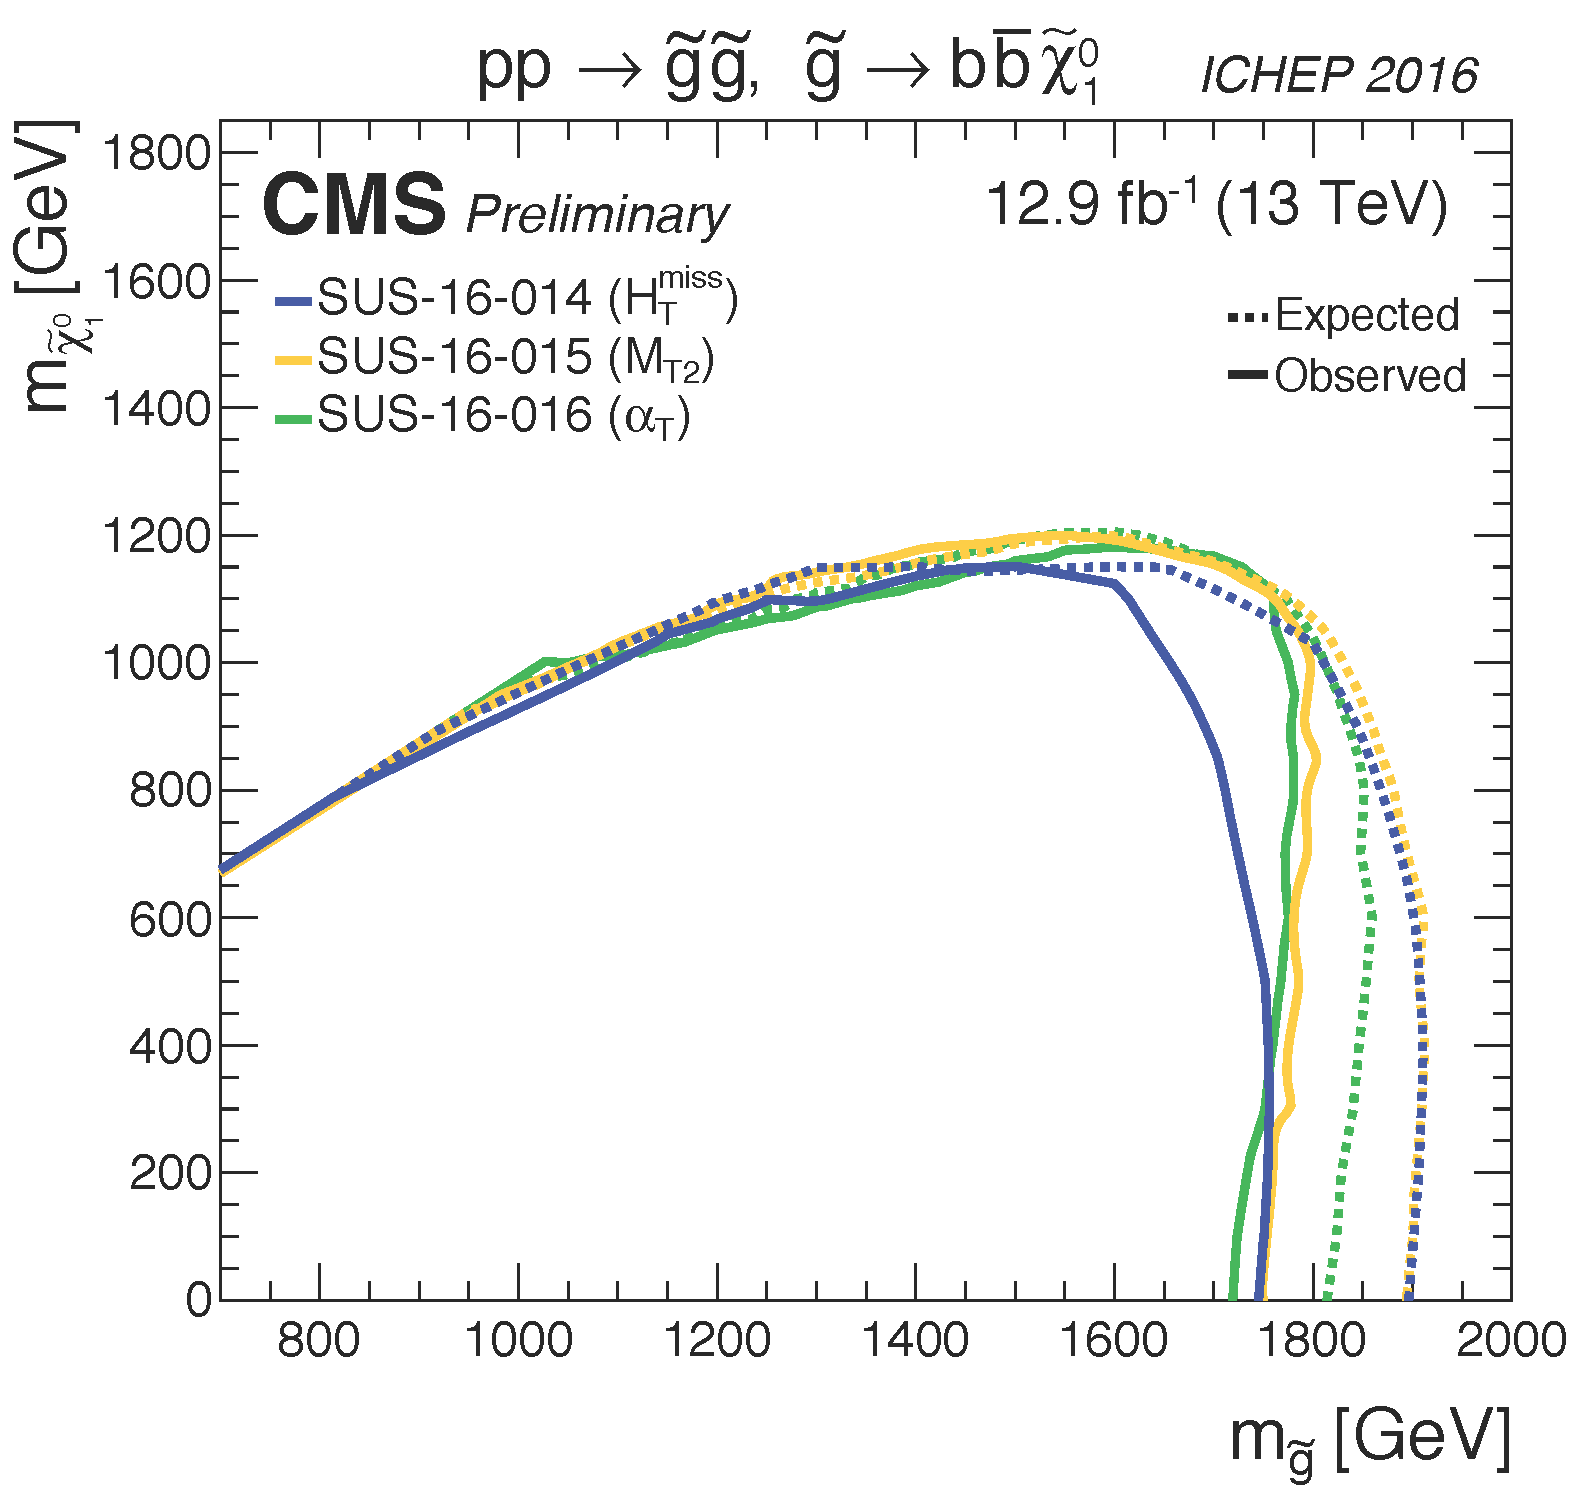 T1bbbb_limits_summary_cms_ICHEP16.png